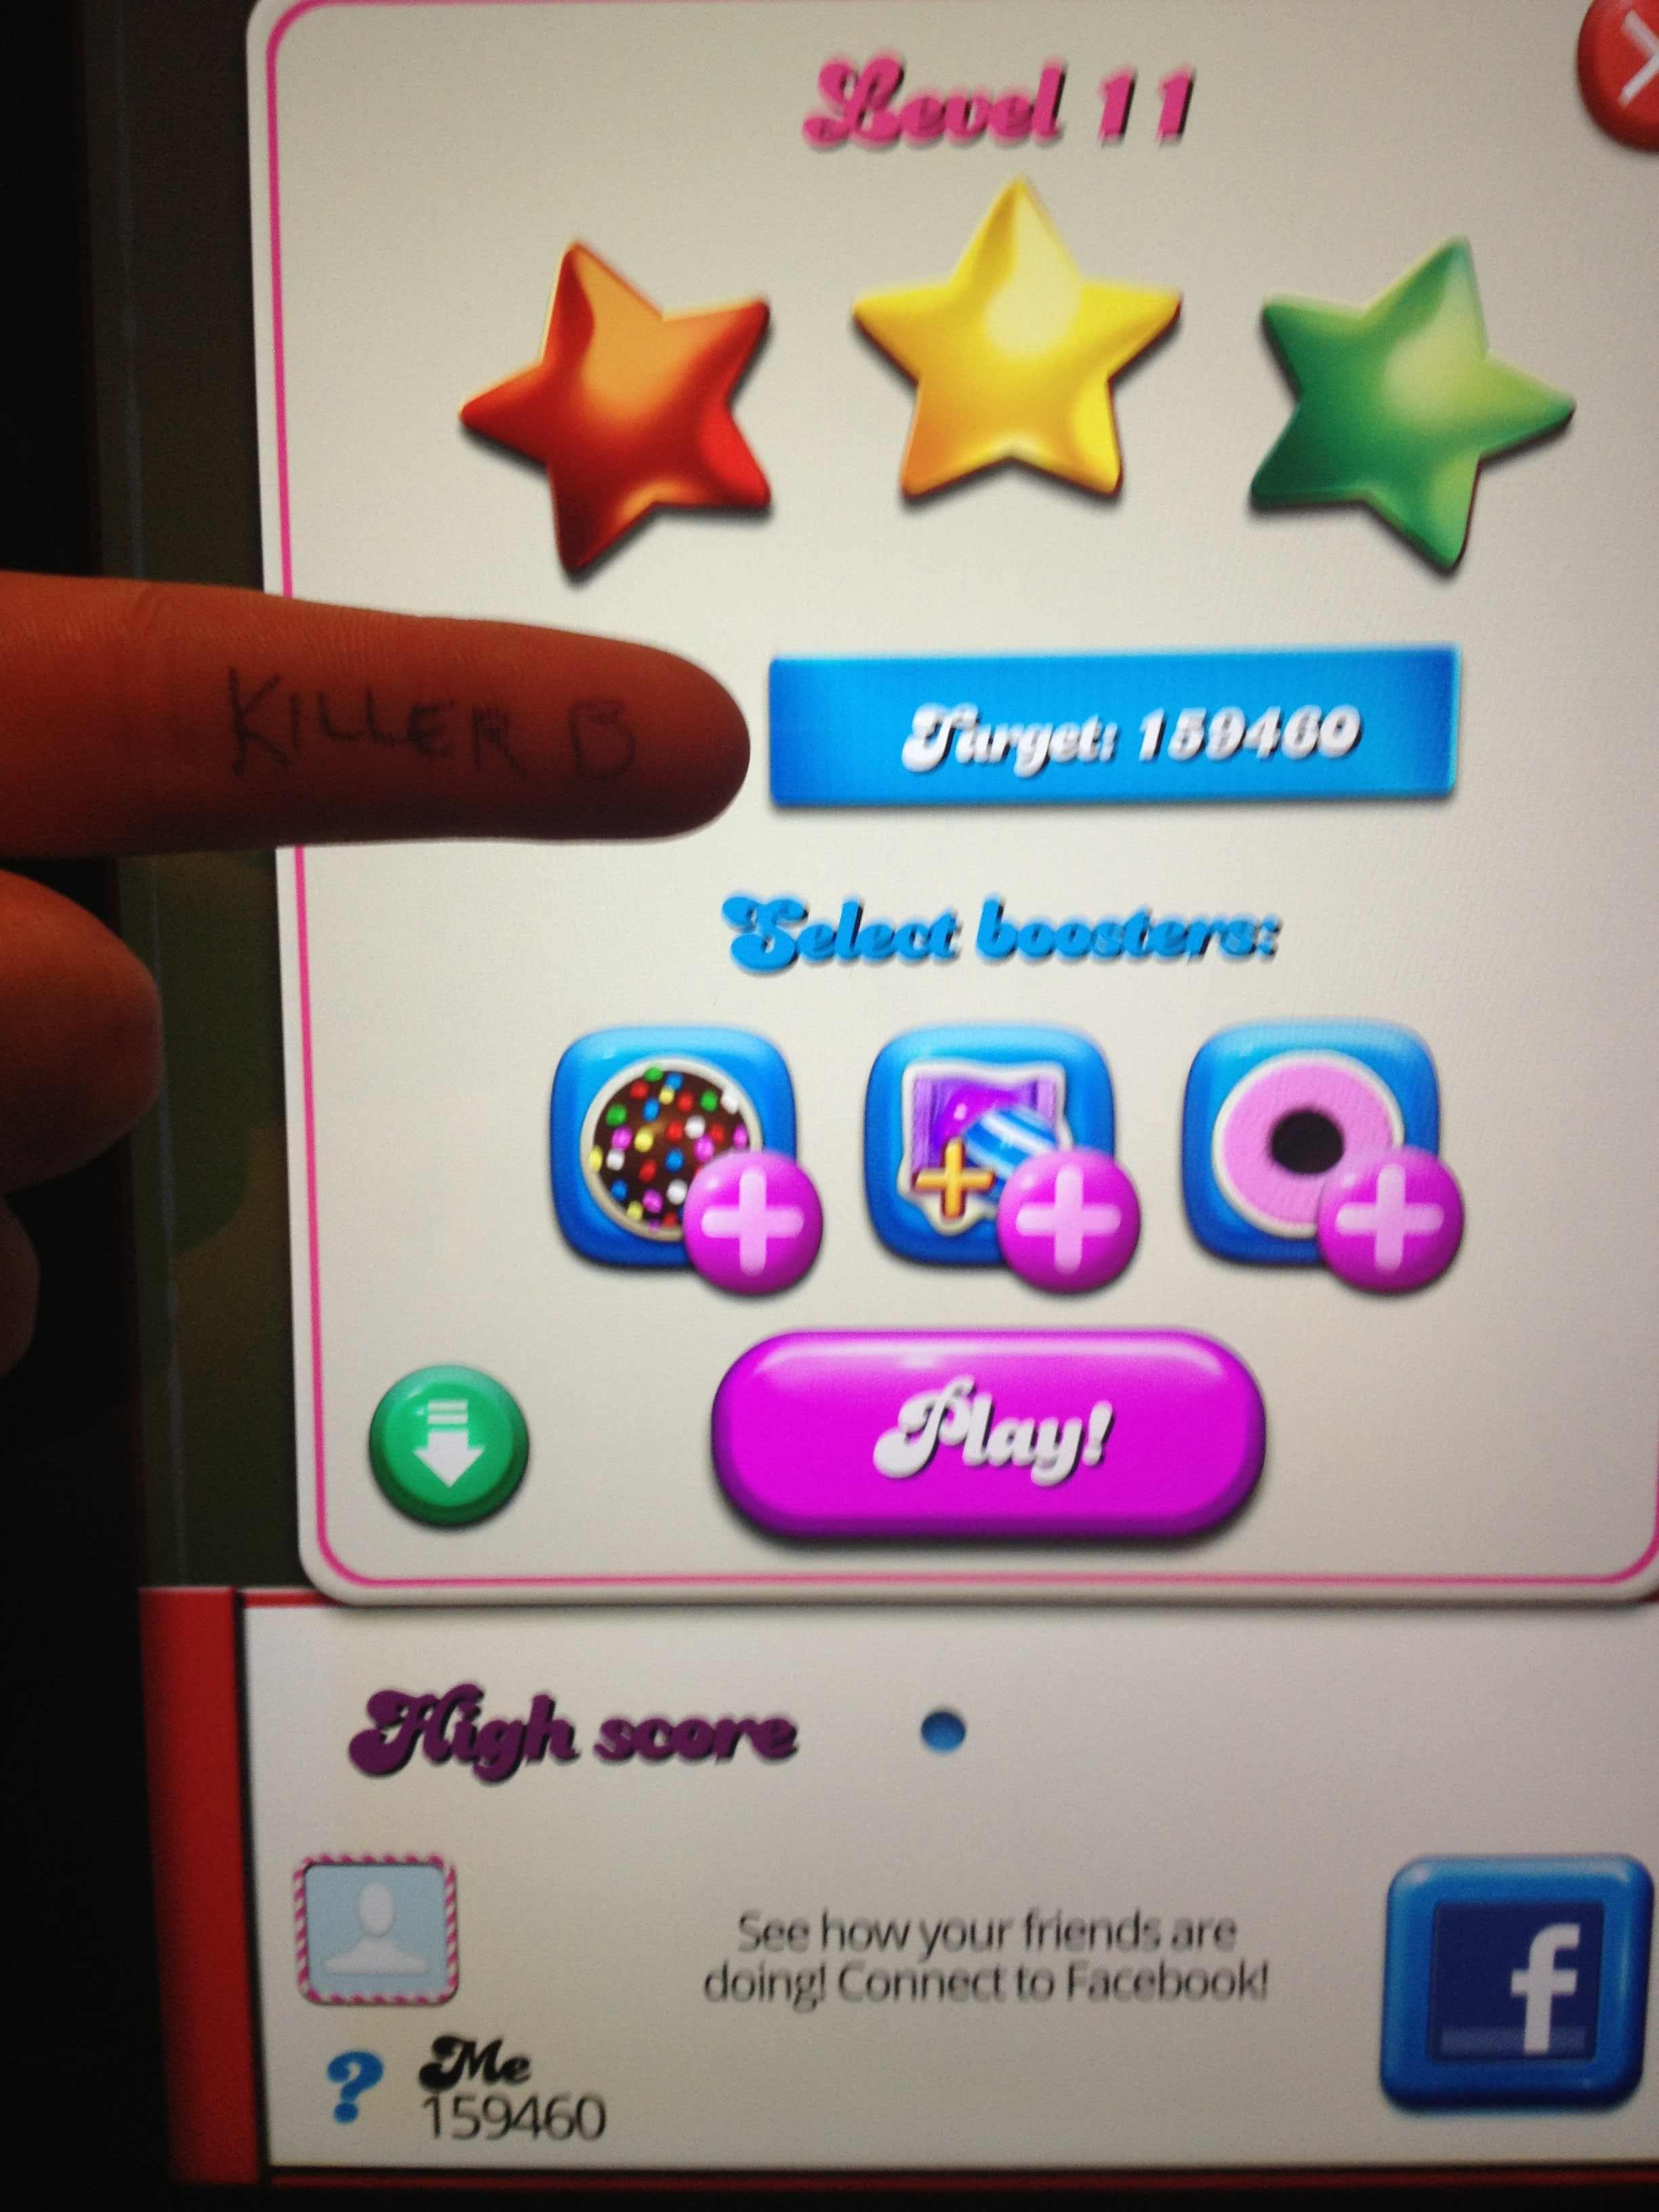 KillerB: Candy Crush Saga: Level 011 (iOS) 159,460 points on 2013-10-29 00:08:20